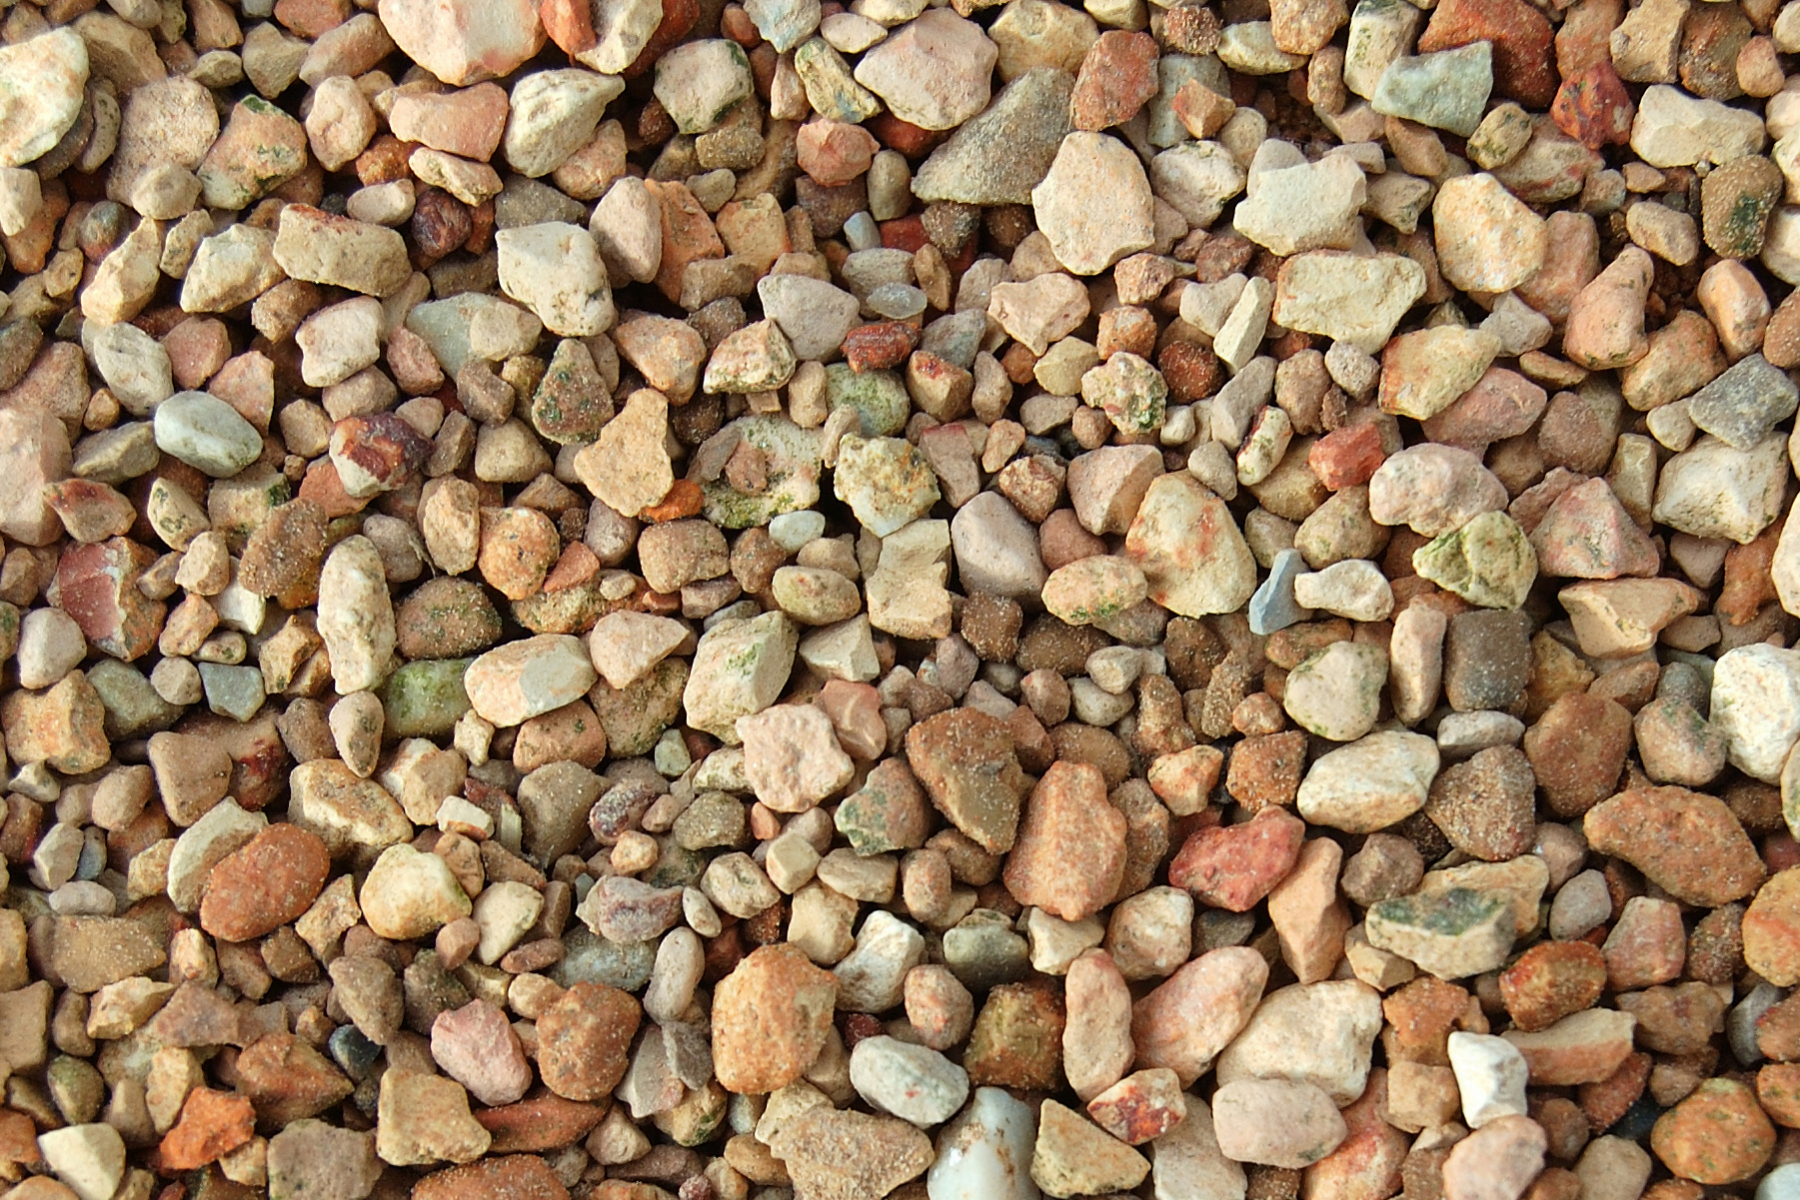 Landscaping with rock including pea gravel